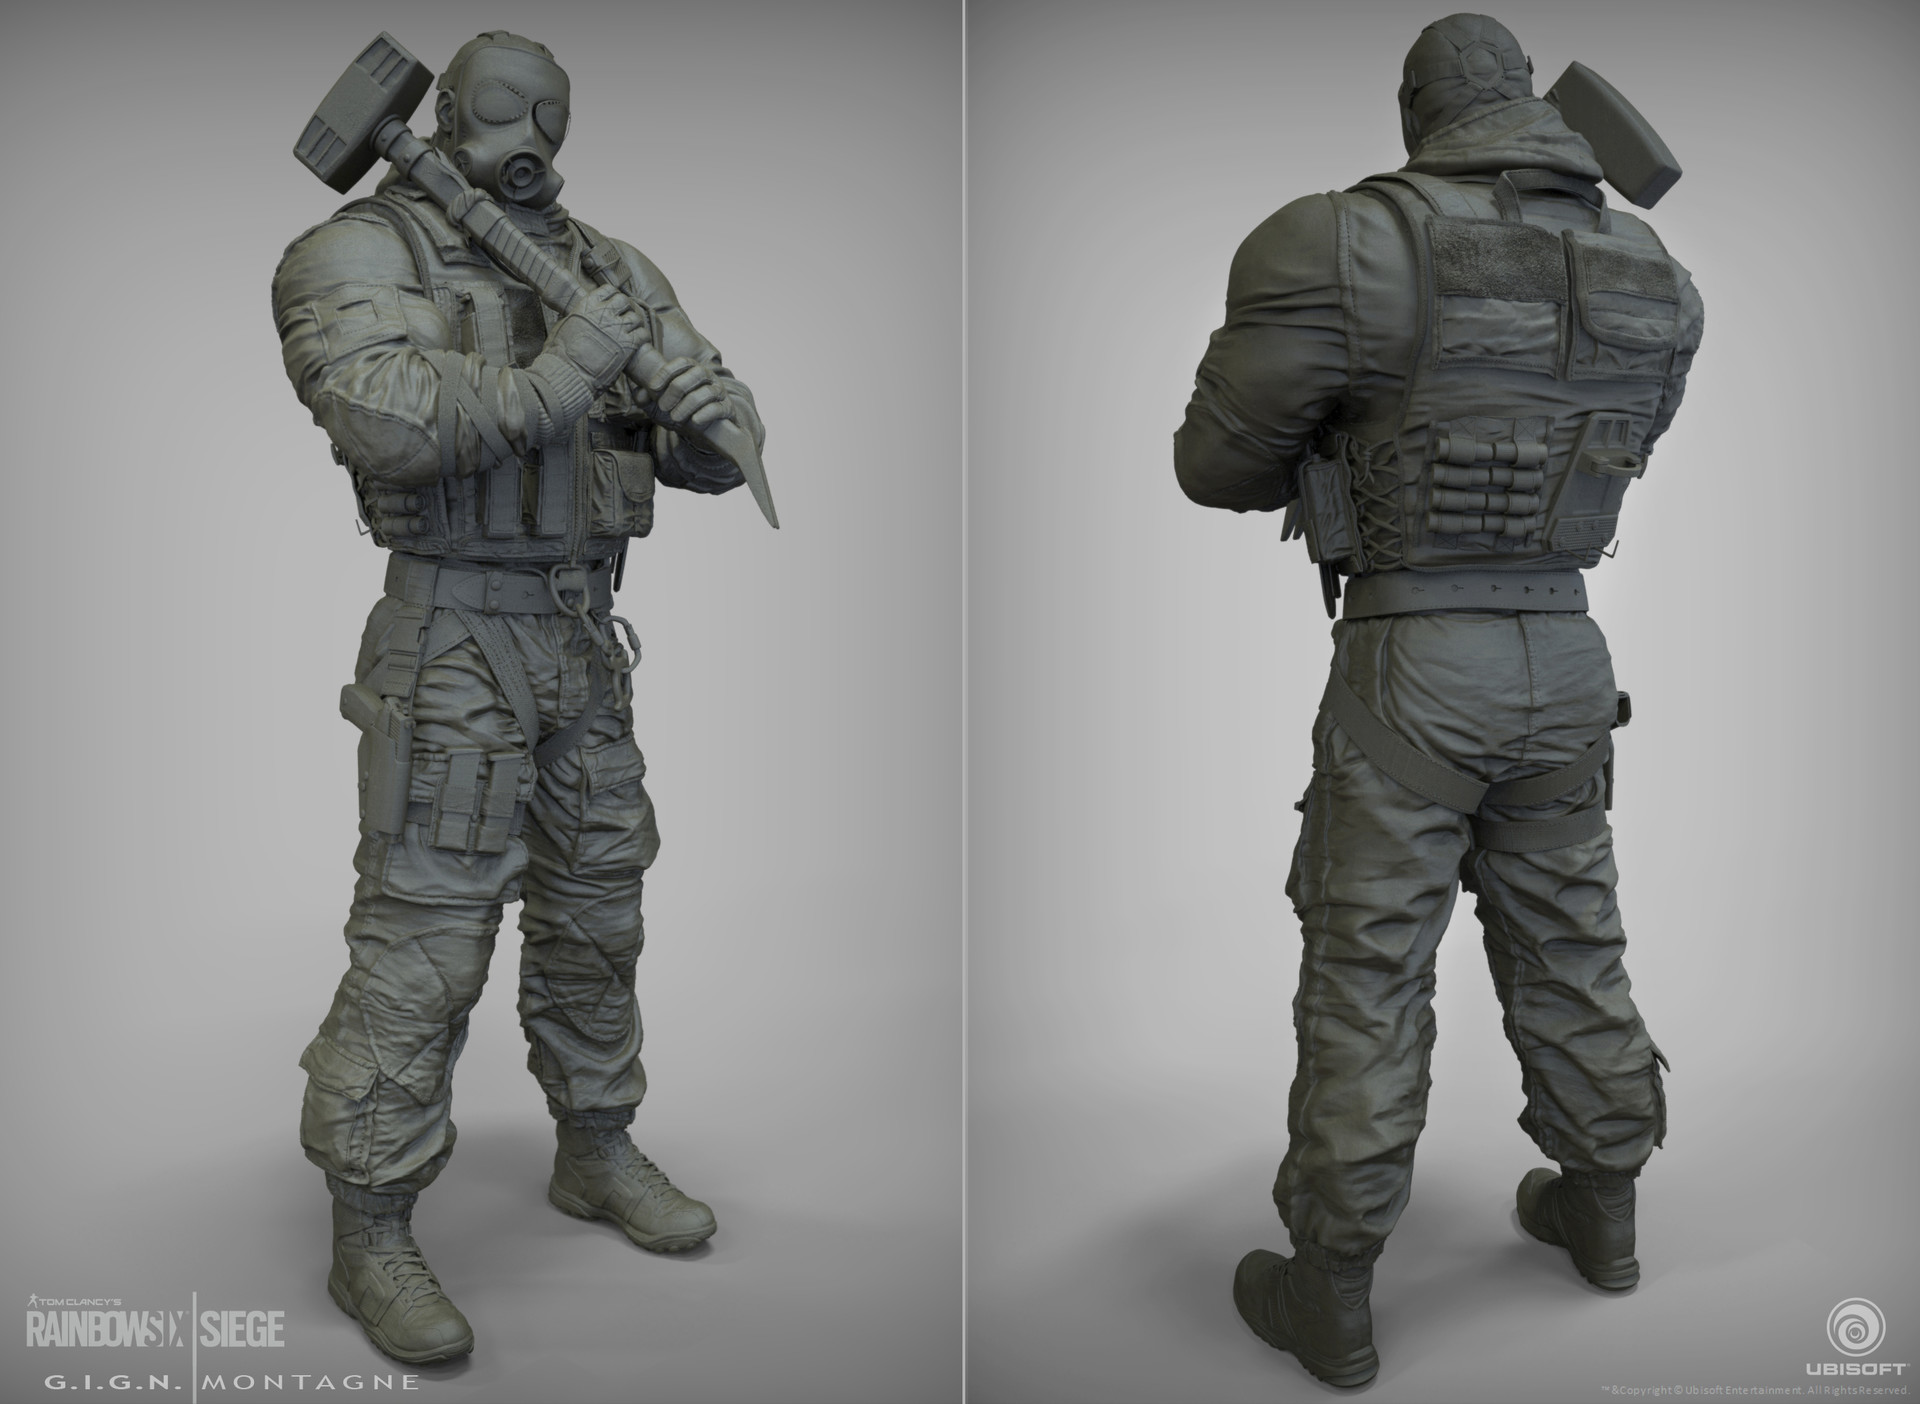 J mark sas sledge sculpt